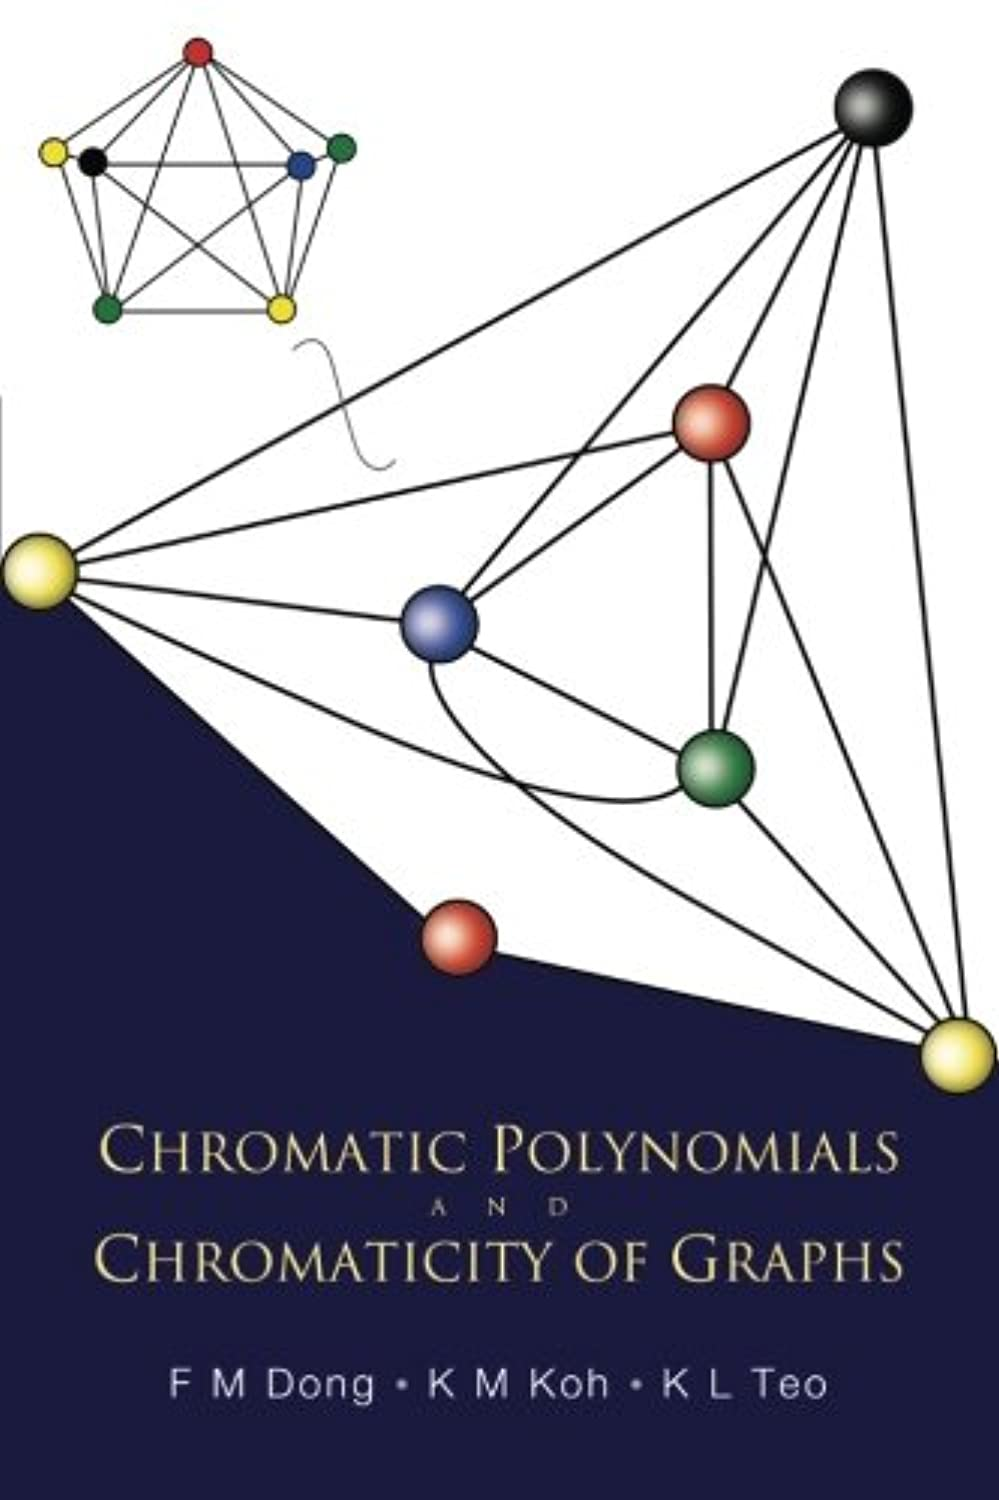 Chromatic Polynomials And Chromaticity of Graphs